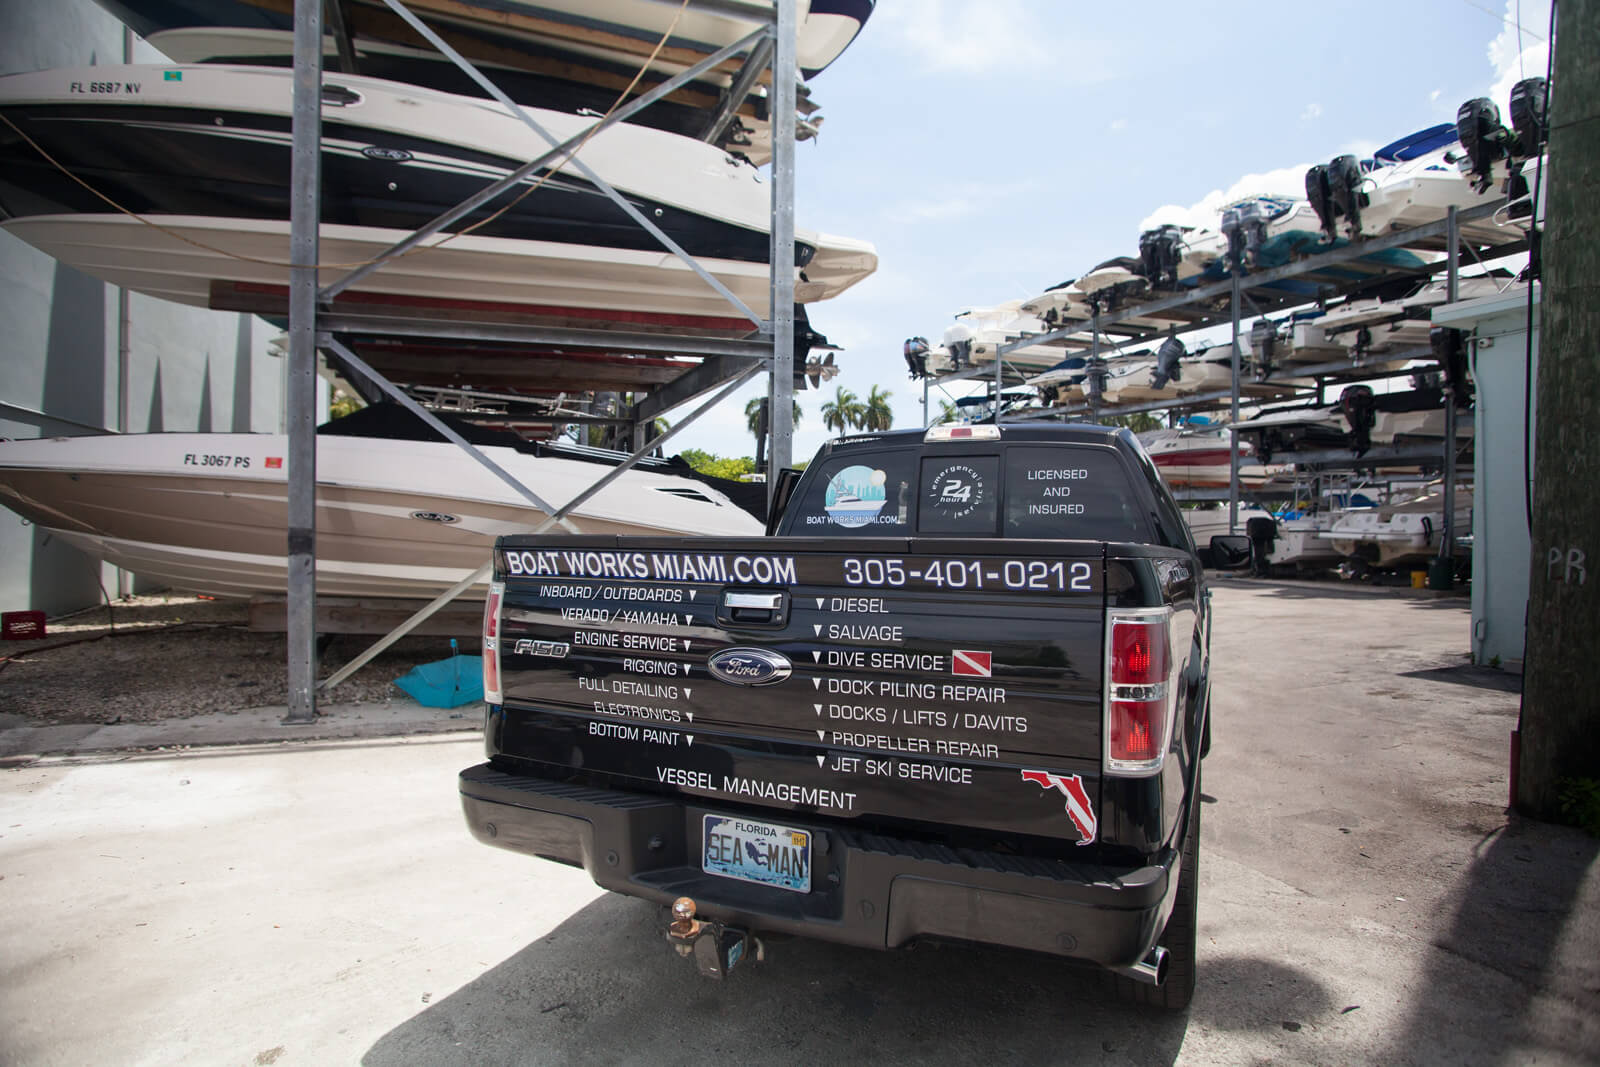 Boat Works Miami Mobile Boat Mechanic